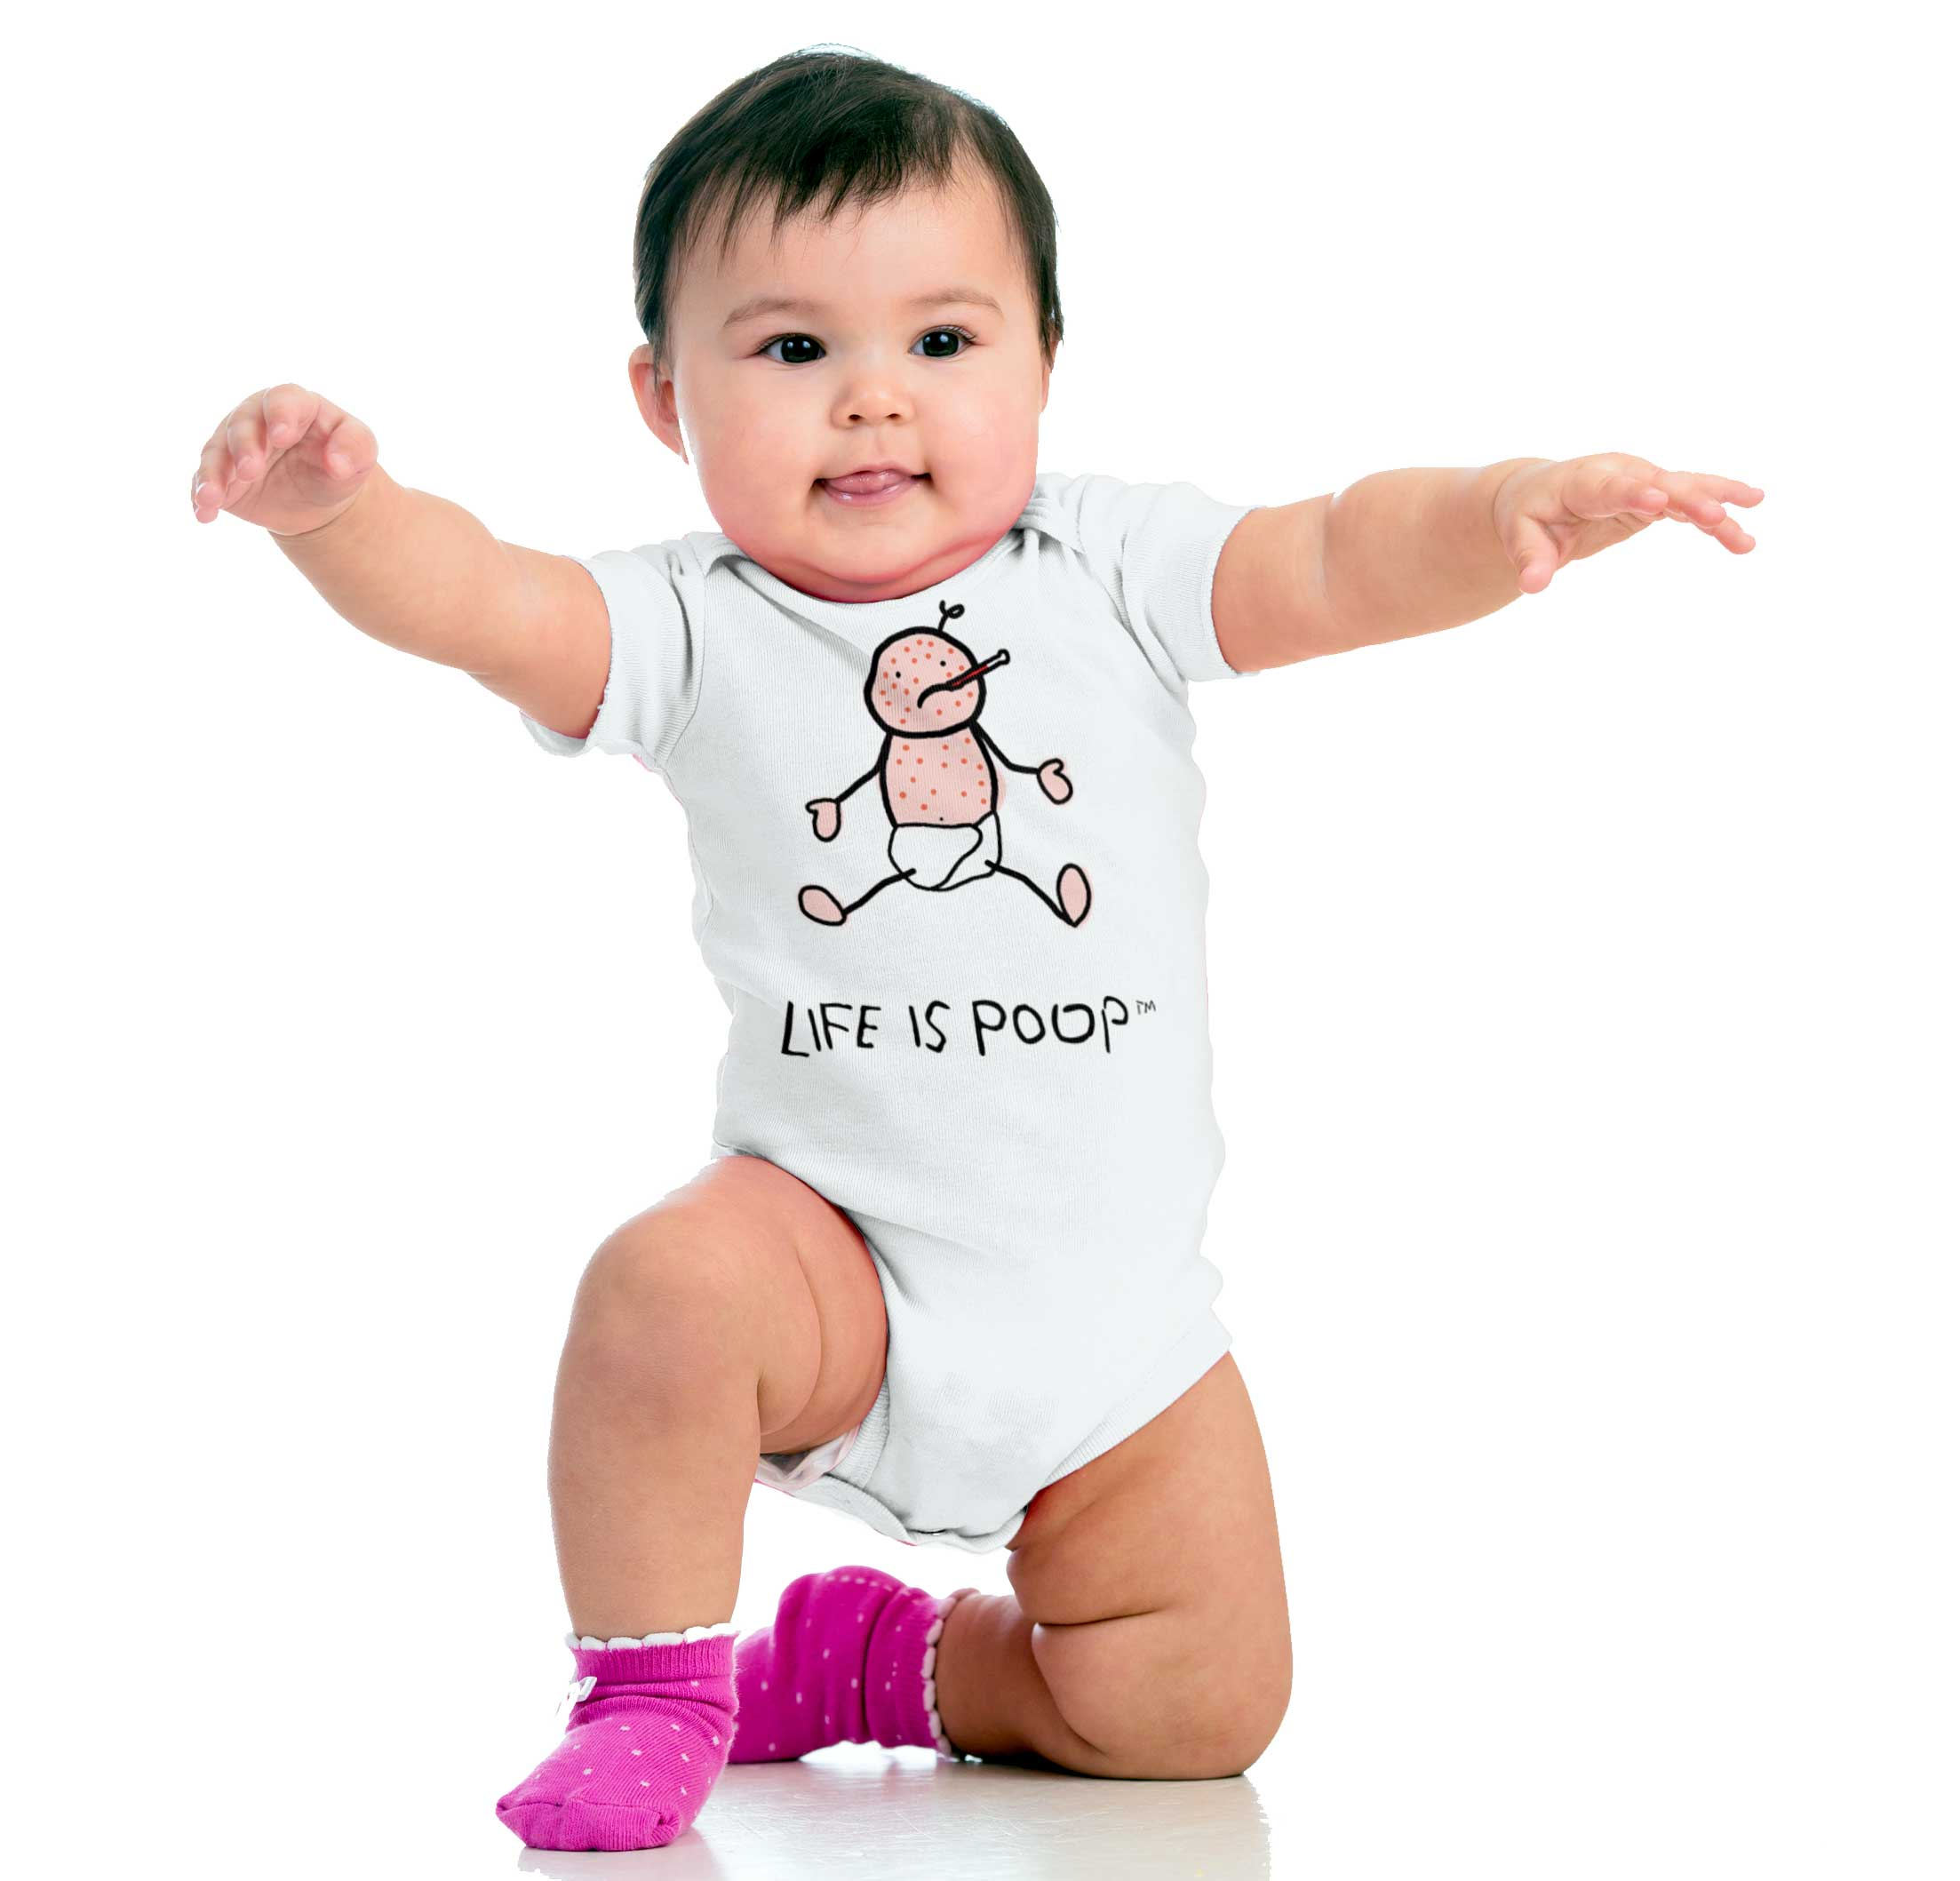 Life is Poop Chicken Pox Funny Cool Cute Gift Baby Gift Edgy Romper Bodysuit